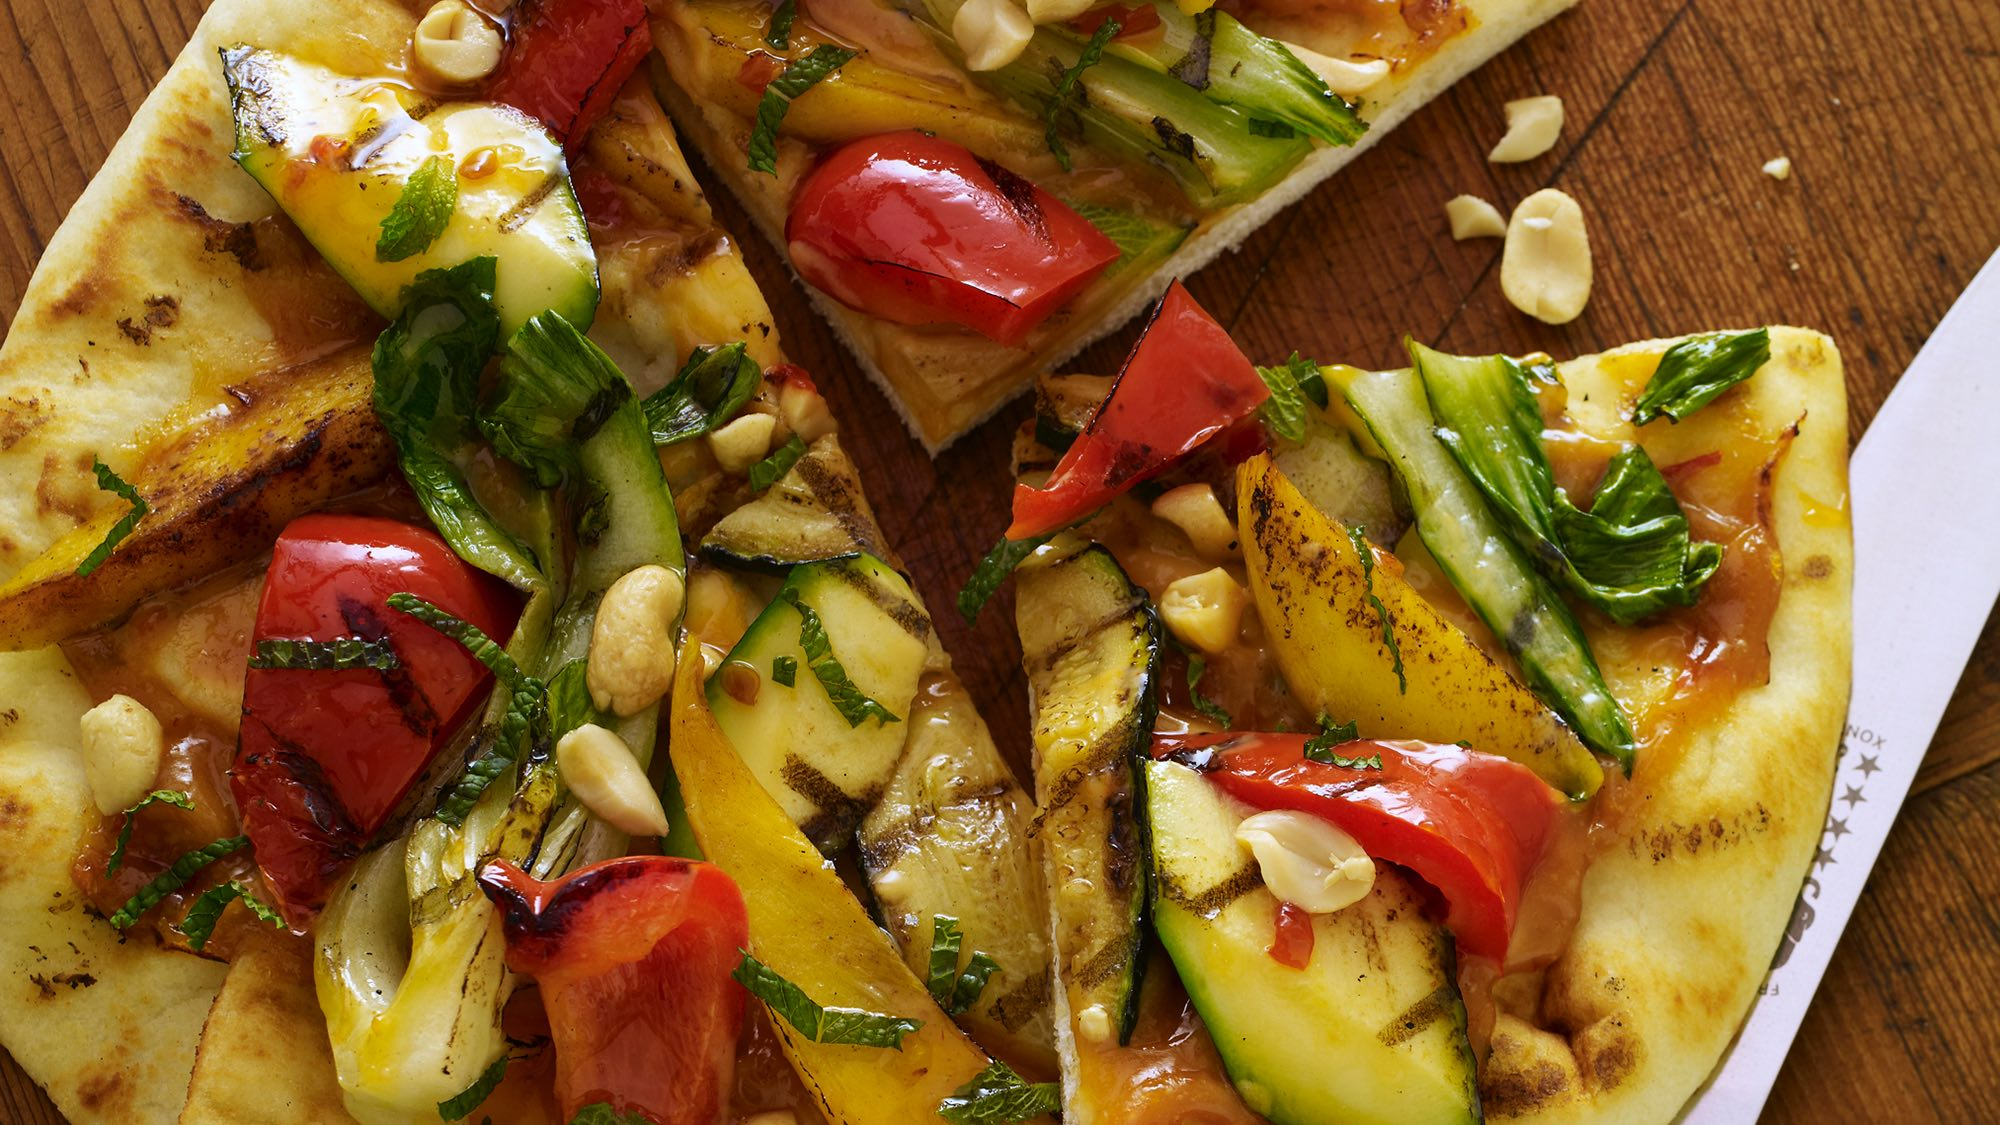 McCormick Thai Grilled Flatbread with Mango and Sweet Chili Sauce